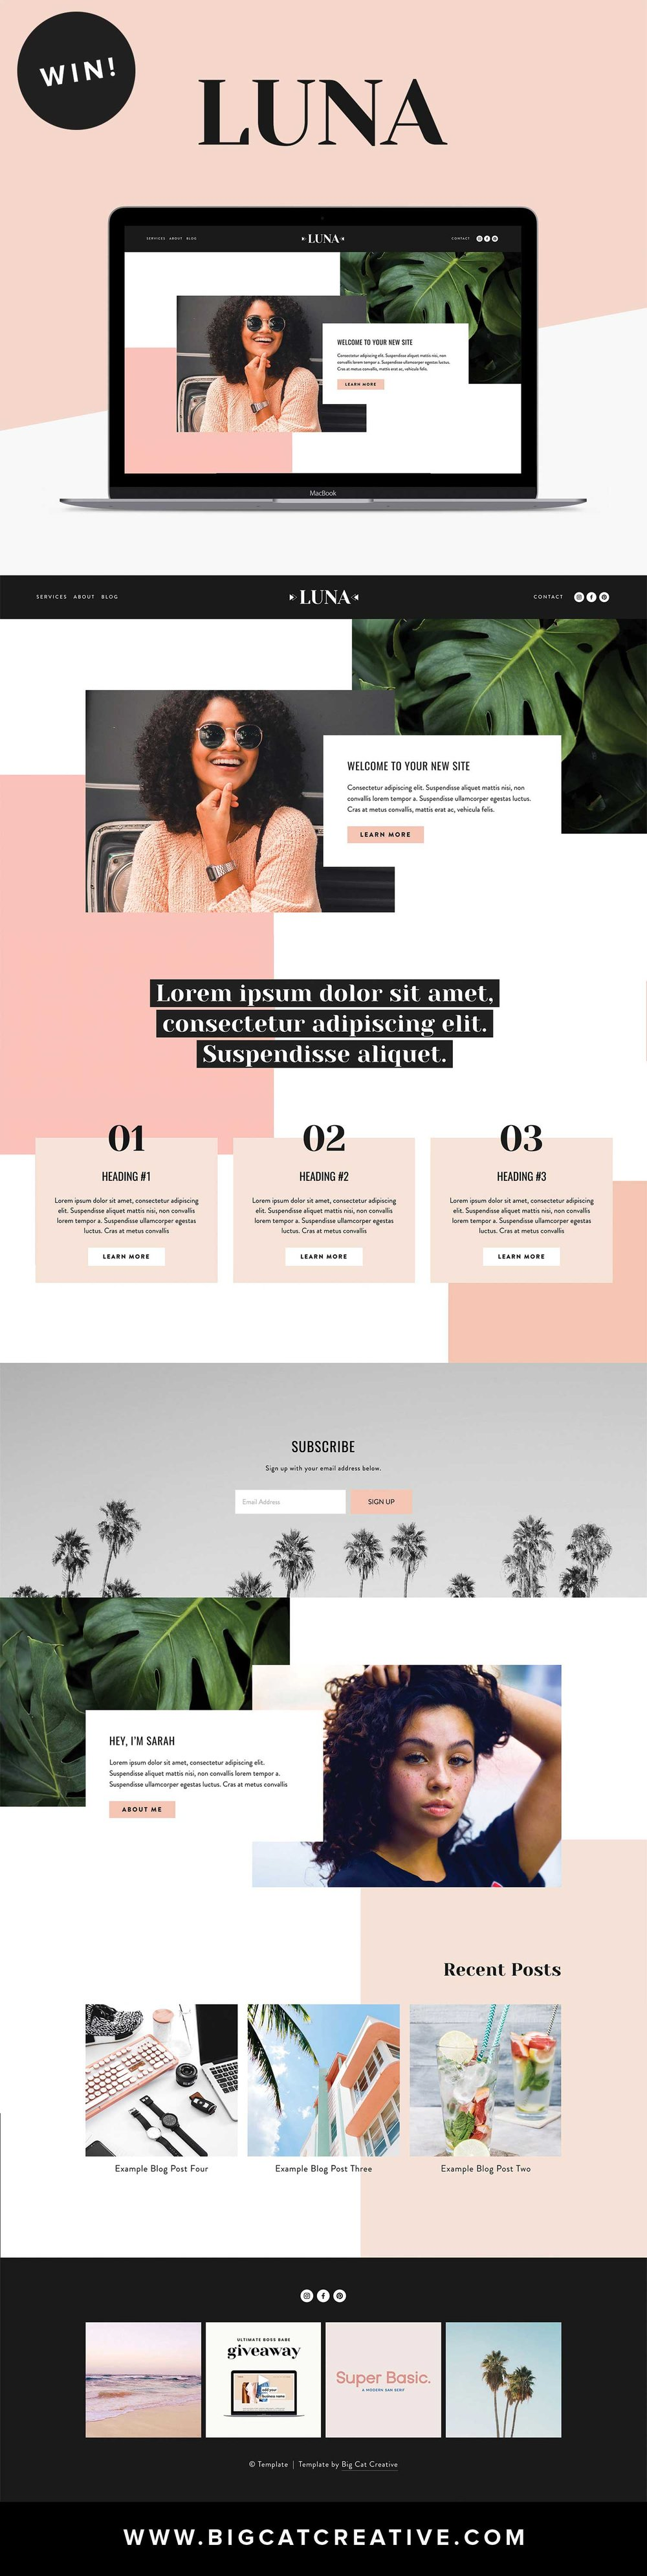 ** GIVEAWAY** LUNA Squarespace Template Kit by Big Cat Creative | The Luna Squarespace Template Kit is a fun and dynamic website template that is perfect for almost any small business, blogger or influencer. #squarespace #template #website